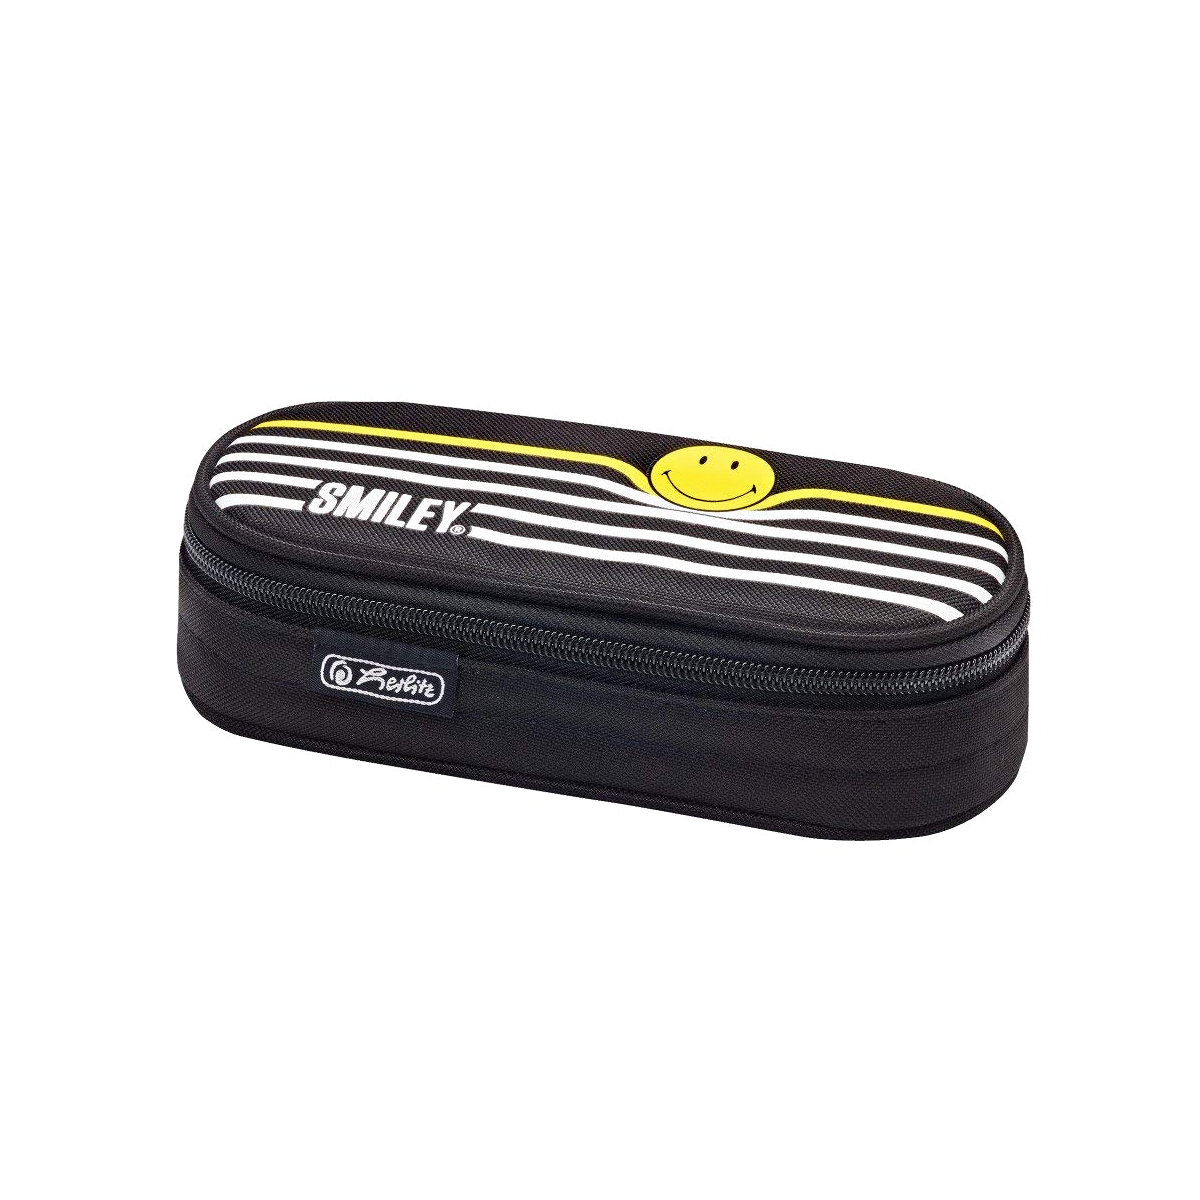 Penar Necessaire Oval, Motiv Smileyworld, Black Stripes, Herlitz, 50015221